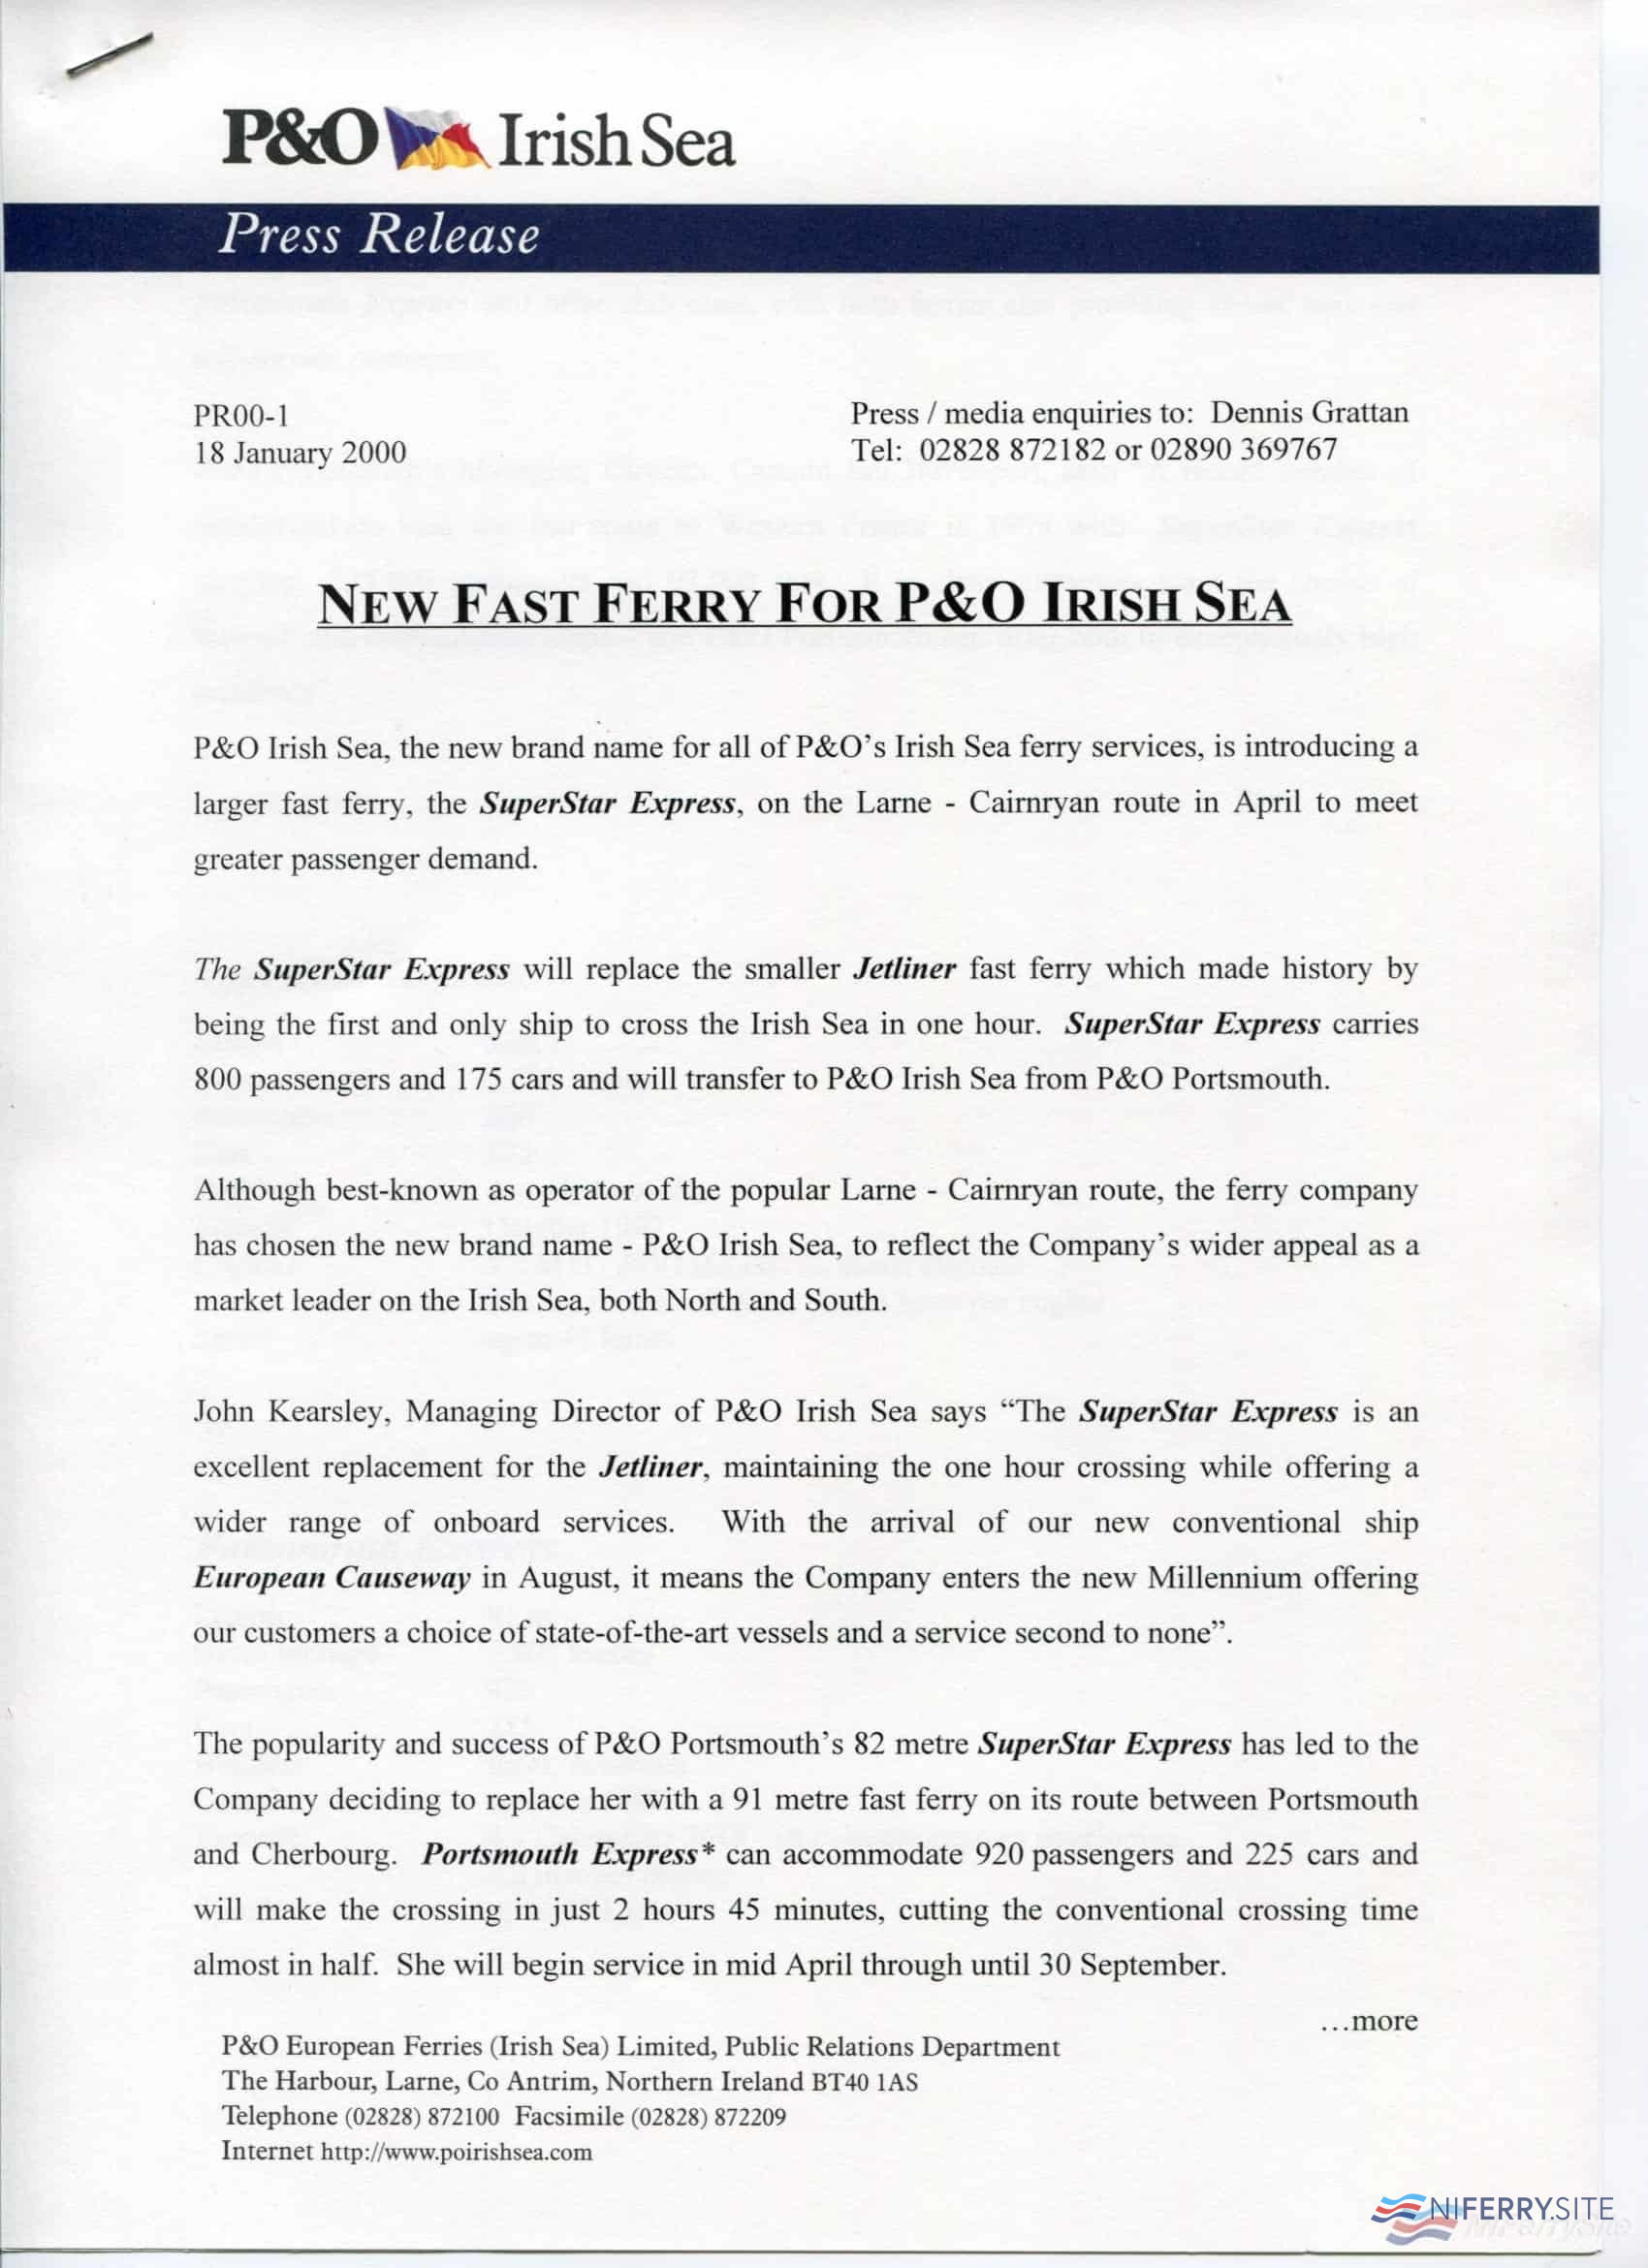 P&O Irish Sea Press Release about the introduction of <strong>SUPERSTAR EXPRESS</strong> on the Larne - Cairnryan route. NIFerry Archive